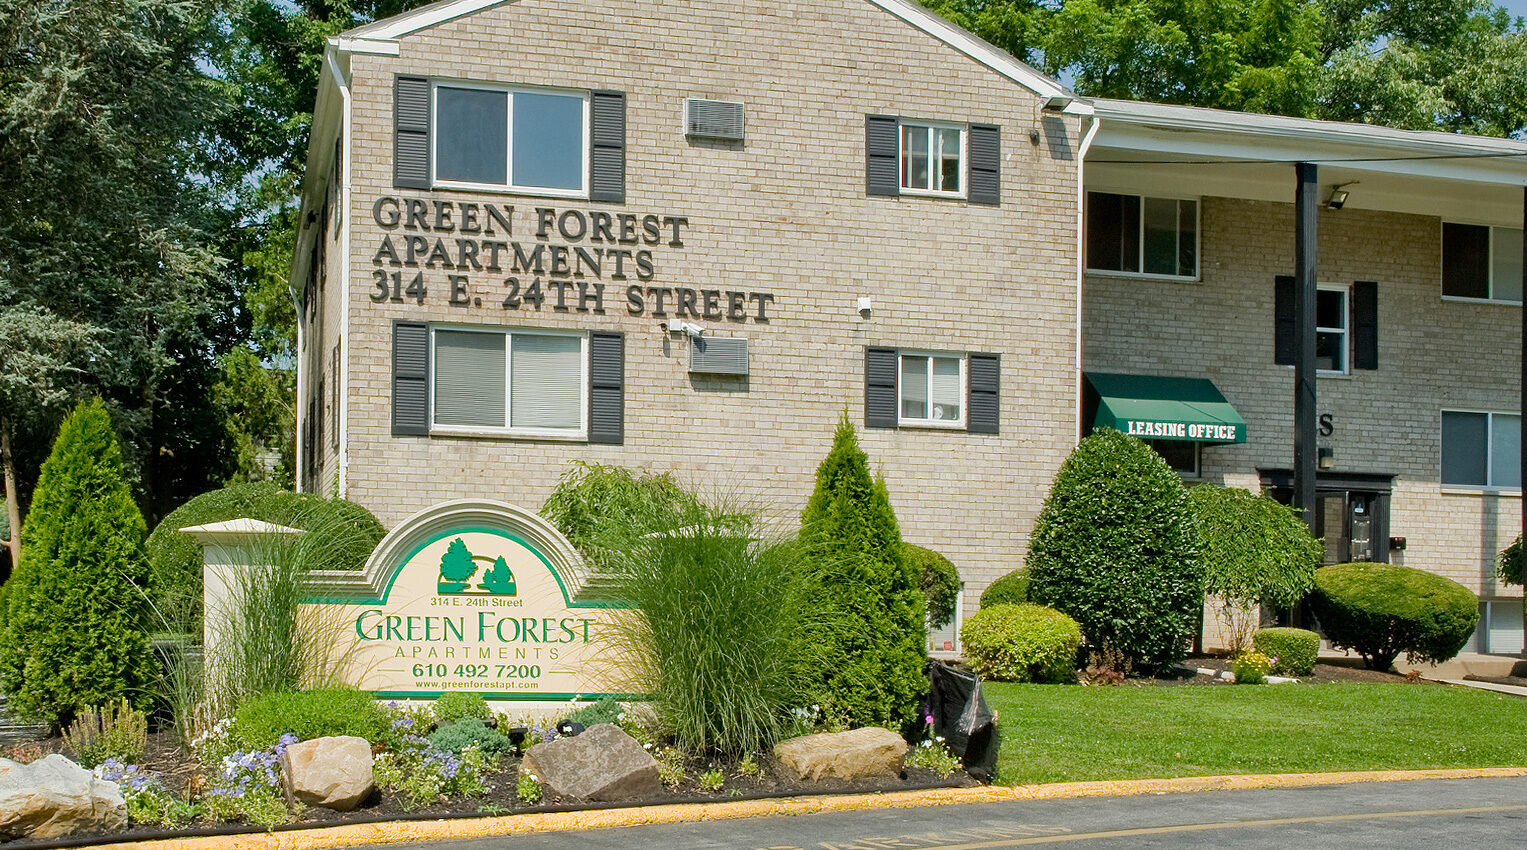 Green Forest Apartments